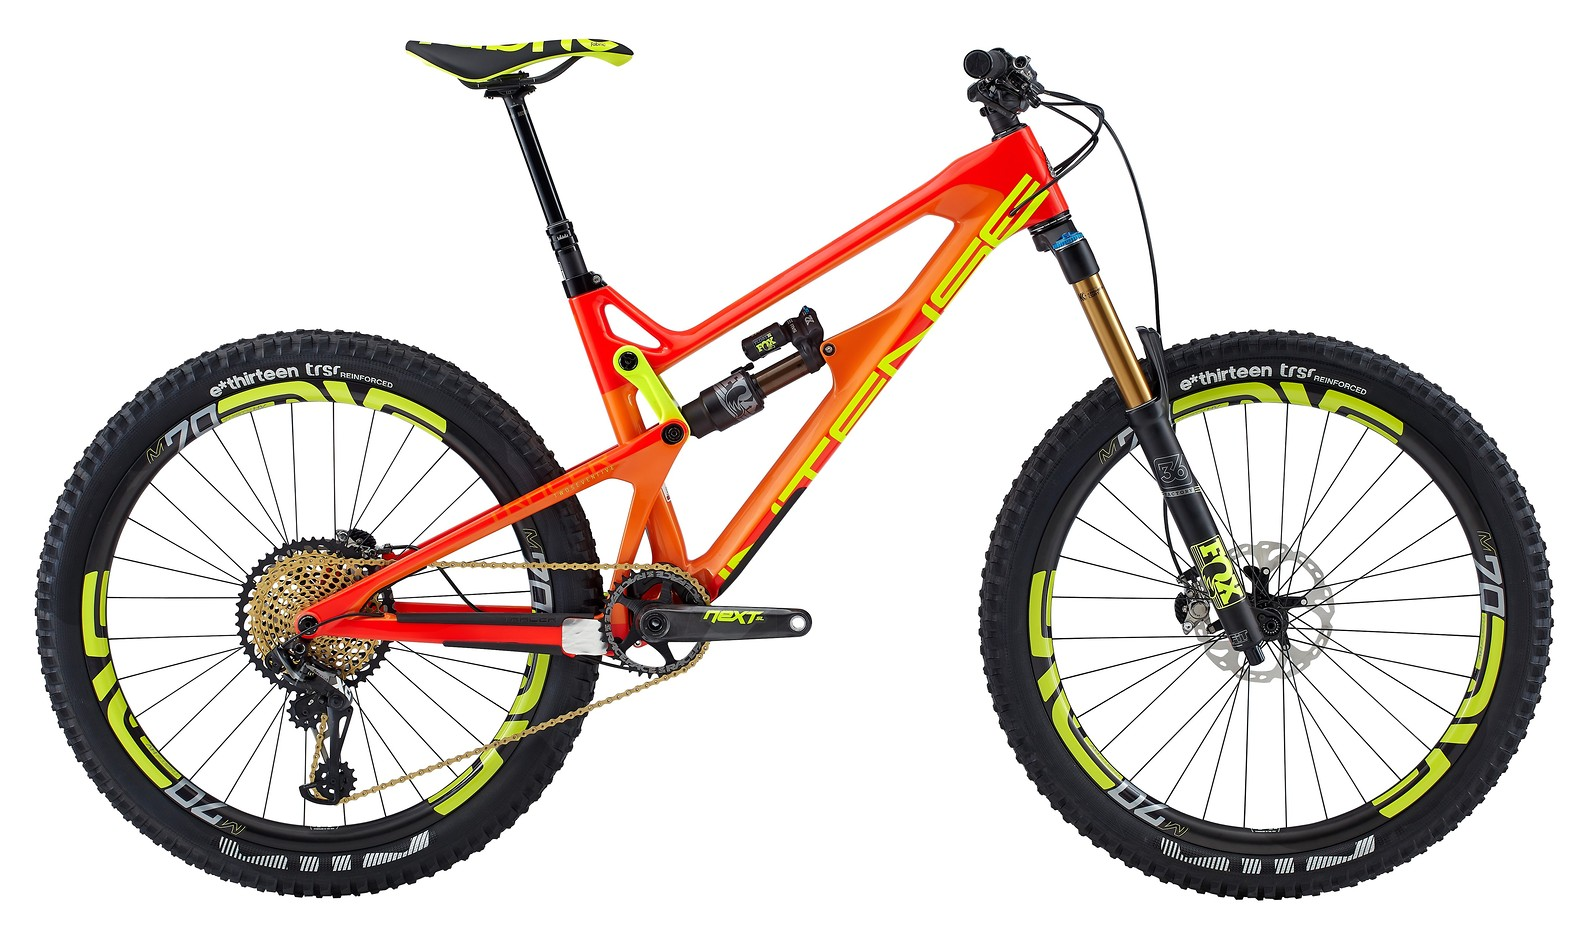 2017 Intense Tracer Factory  1 Tracer FTY RED